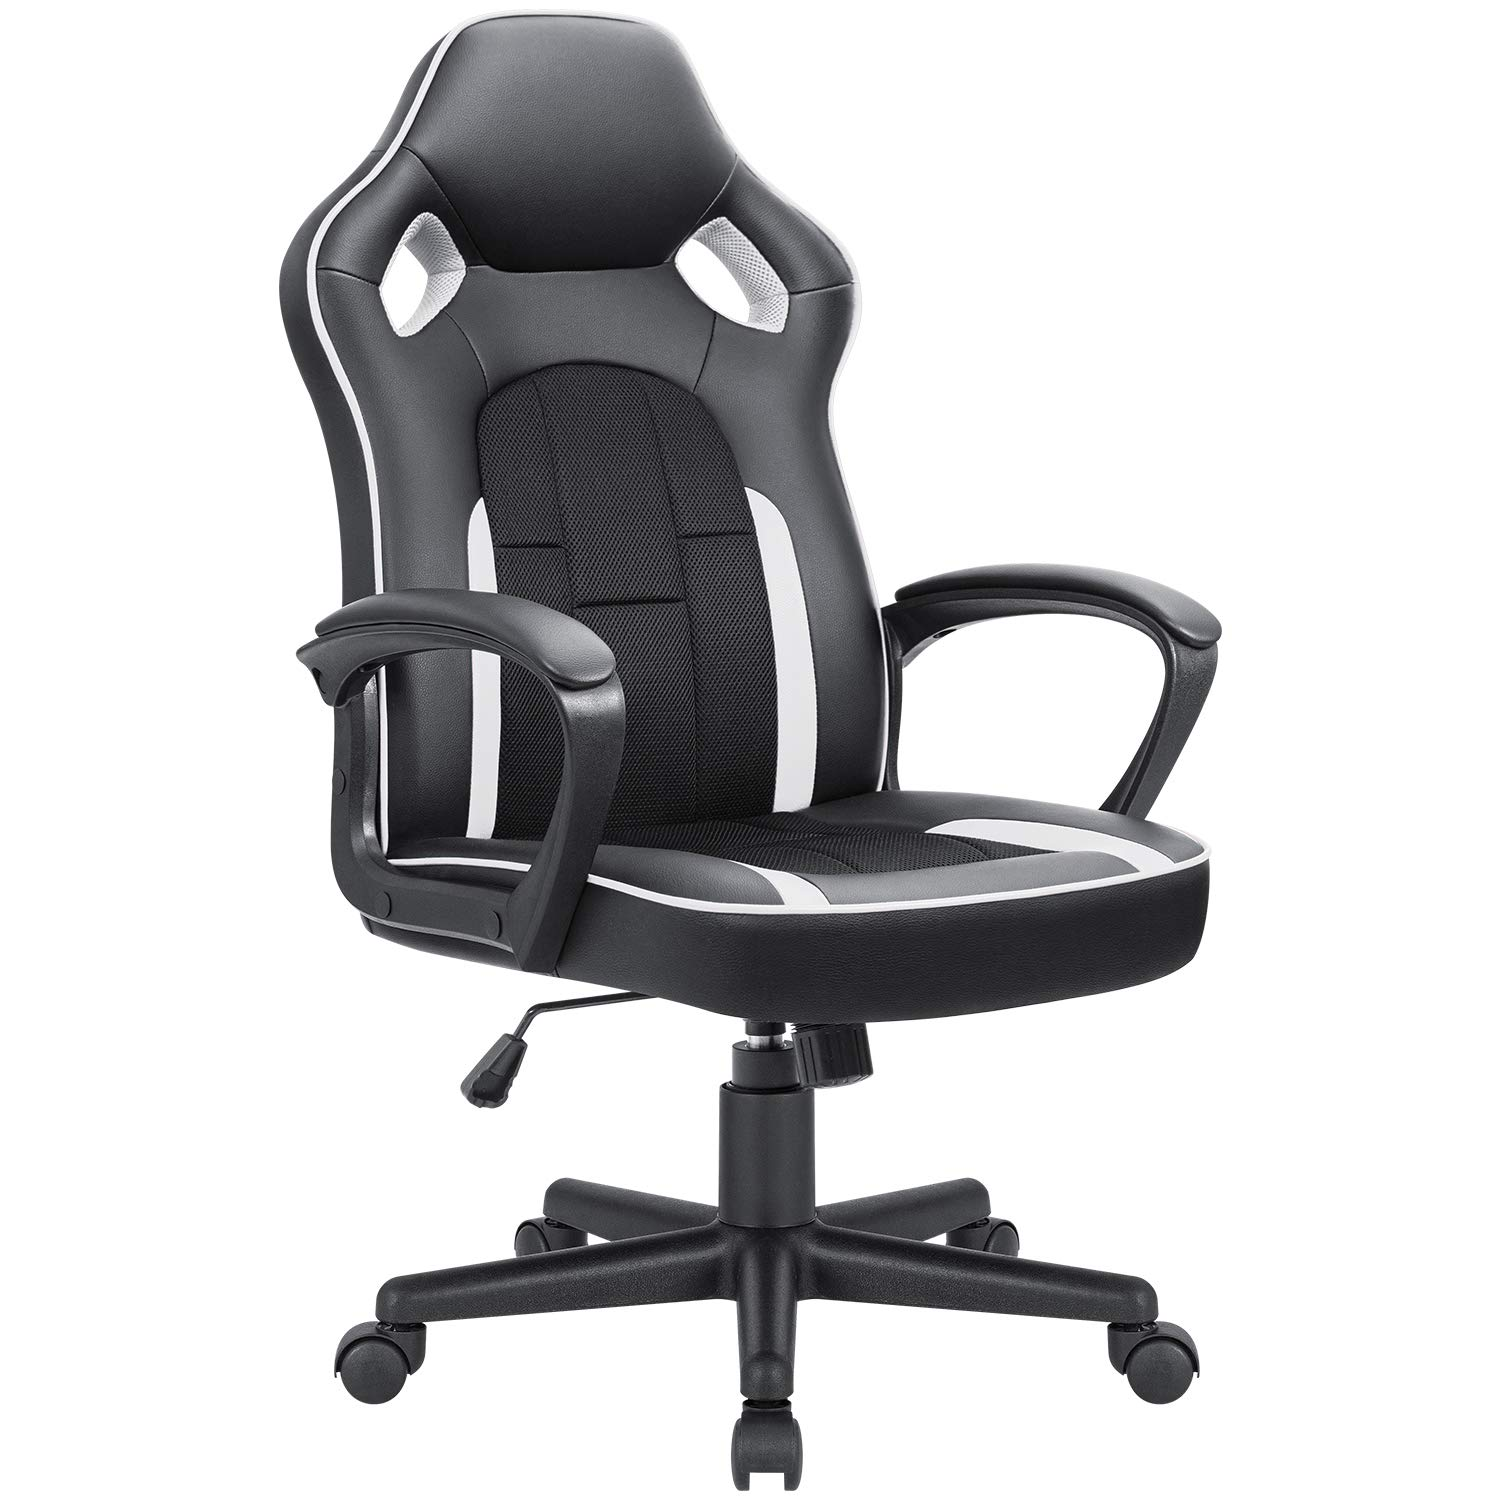 JUMMICO Gaming Chair Ergonomic Executive Office Desk Chair High Back Leather Swivel Computer Racing Chair with Lumbar Support (White) by JUMMICO